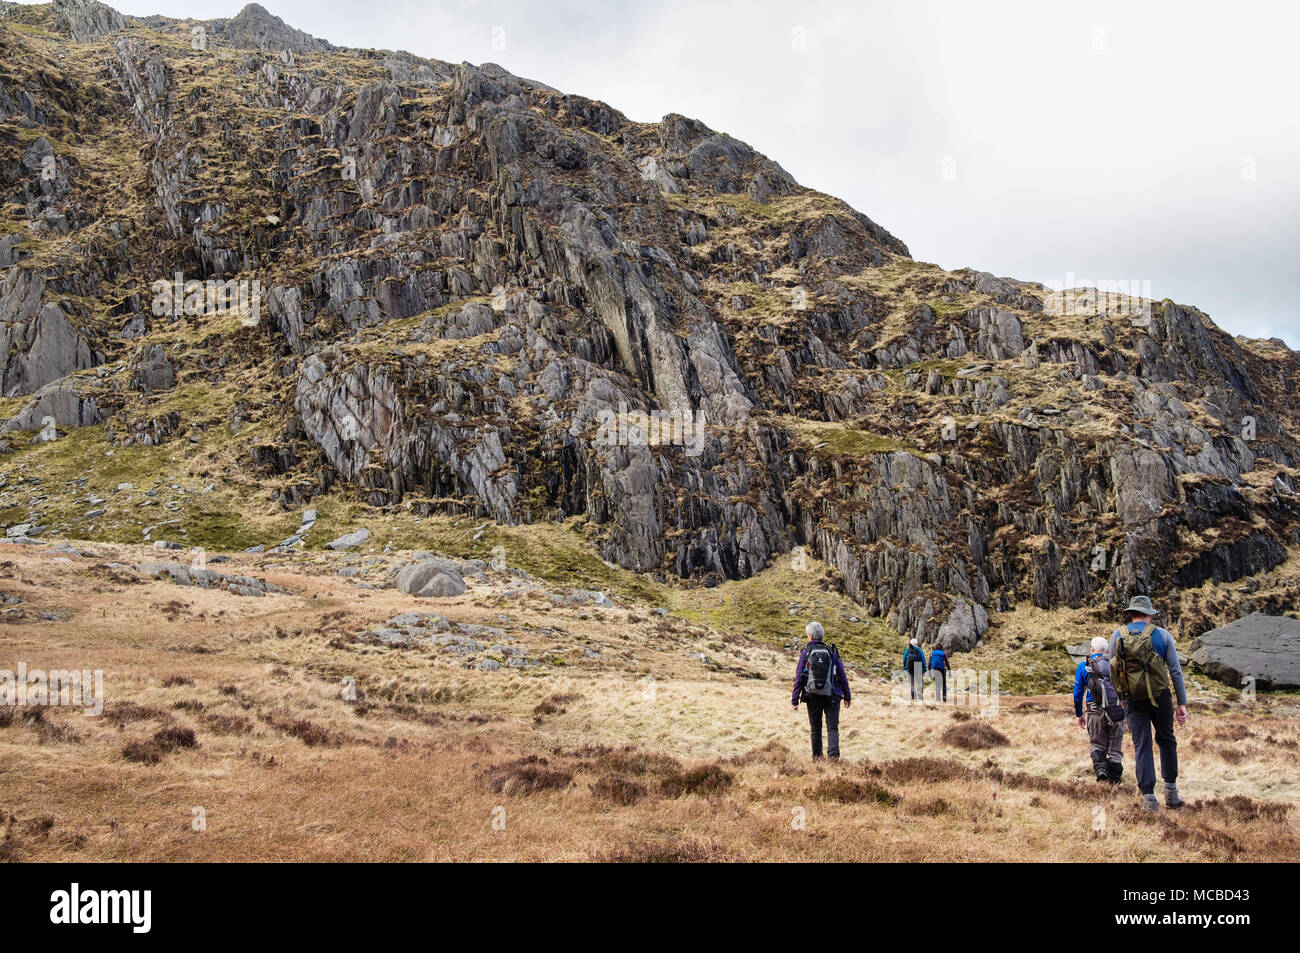 Hikers in Nameles Cwm / Cneifion hiking to start of Seniors Ridge route to Glyder Fawr in mountains of Snowdonia National Park. Ogwen Wales UK Britain - Stock Image